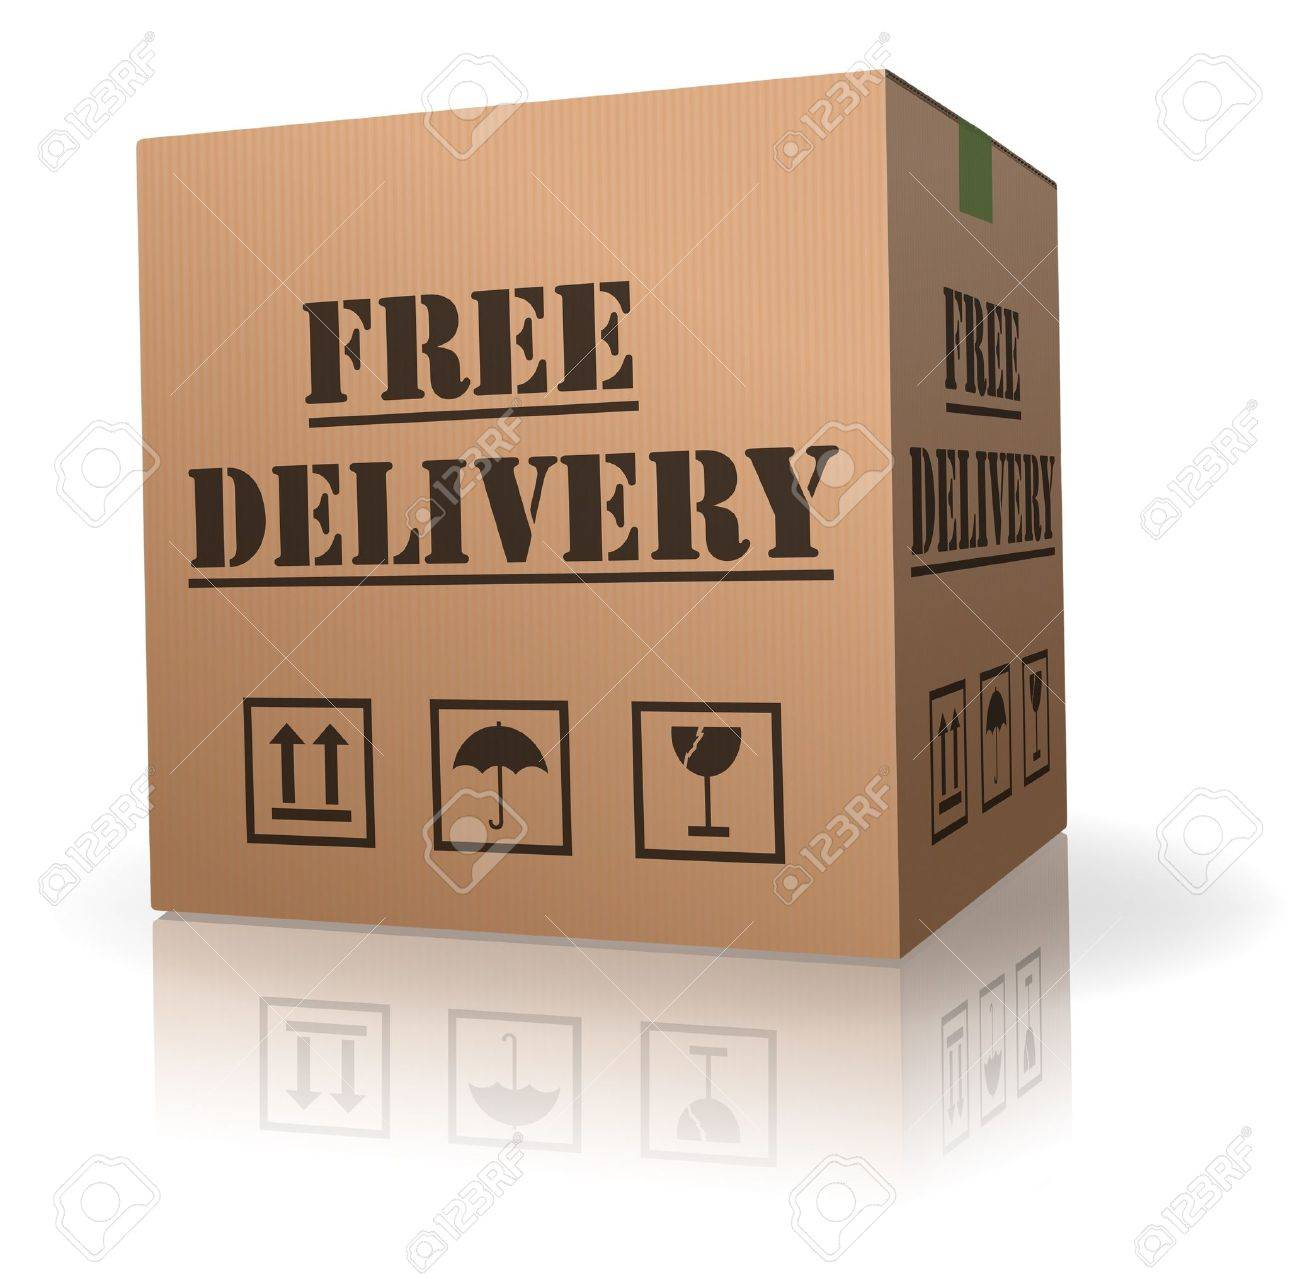 shipping package free delivery cardboard parcel with text order shipment logistics after online shopping deliver packet or relocation and moving Stock Photo - 8012990